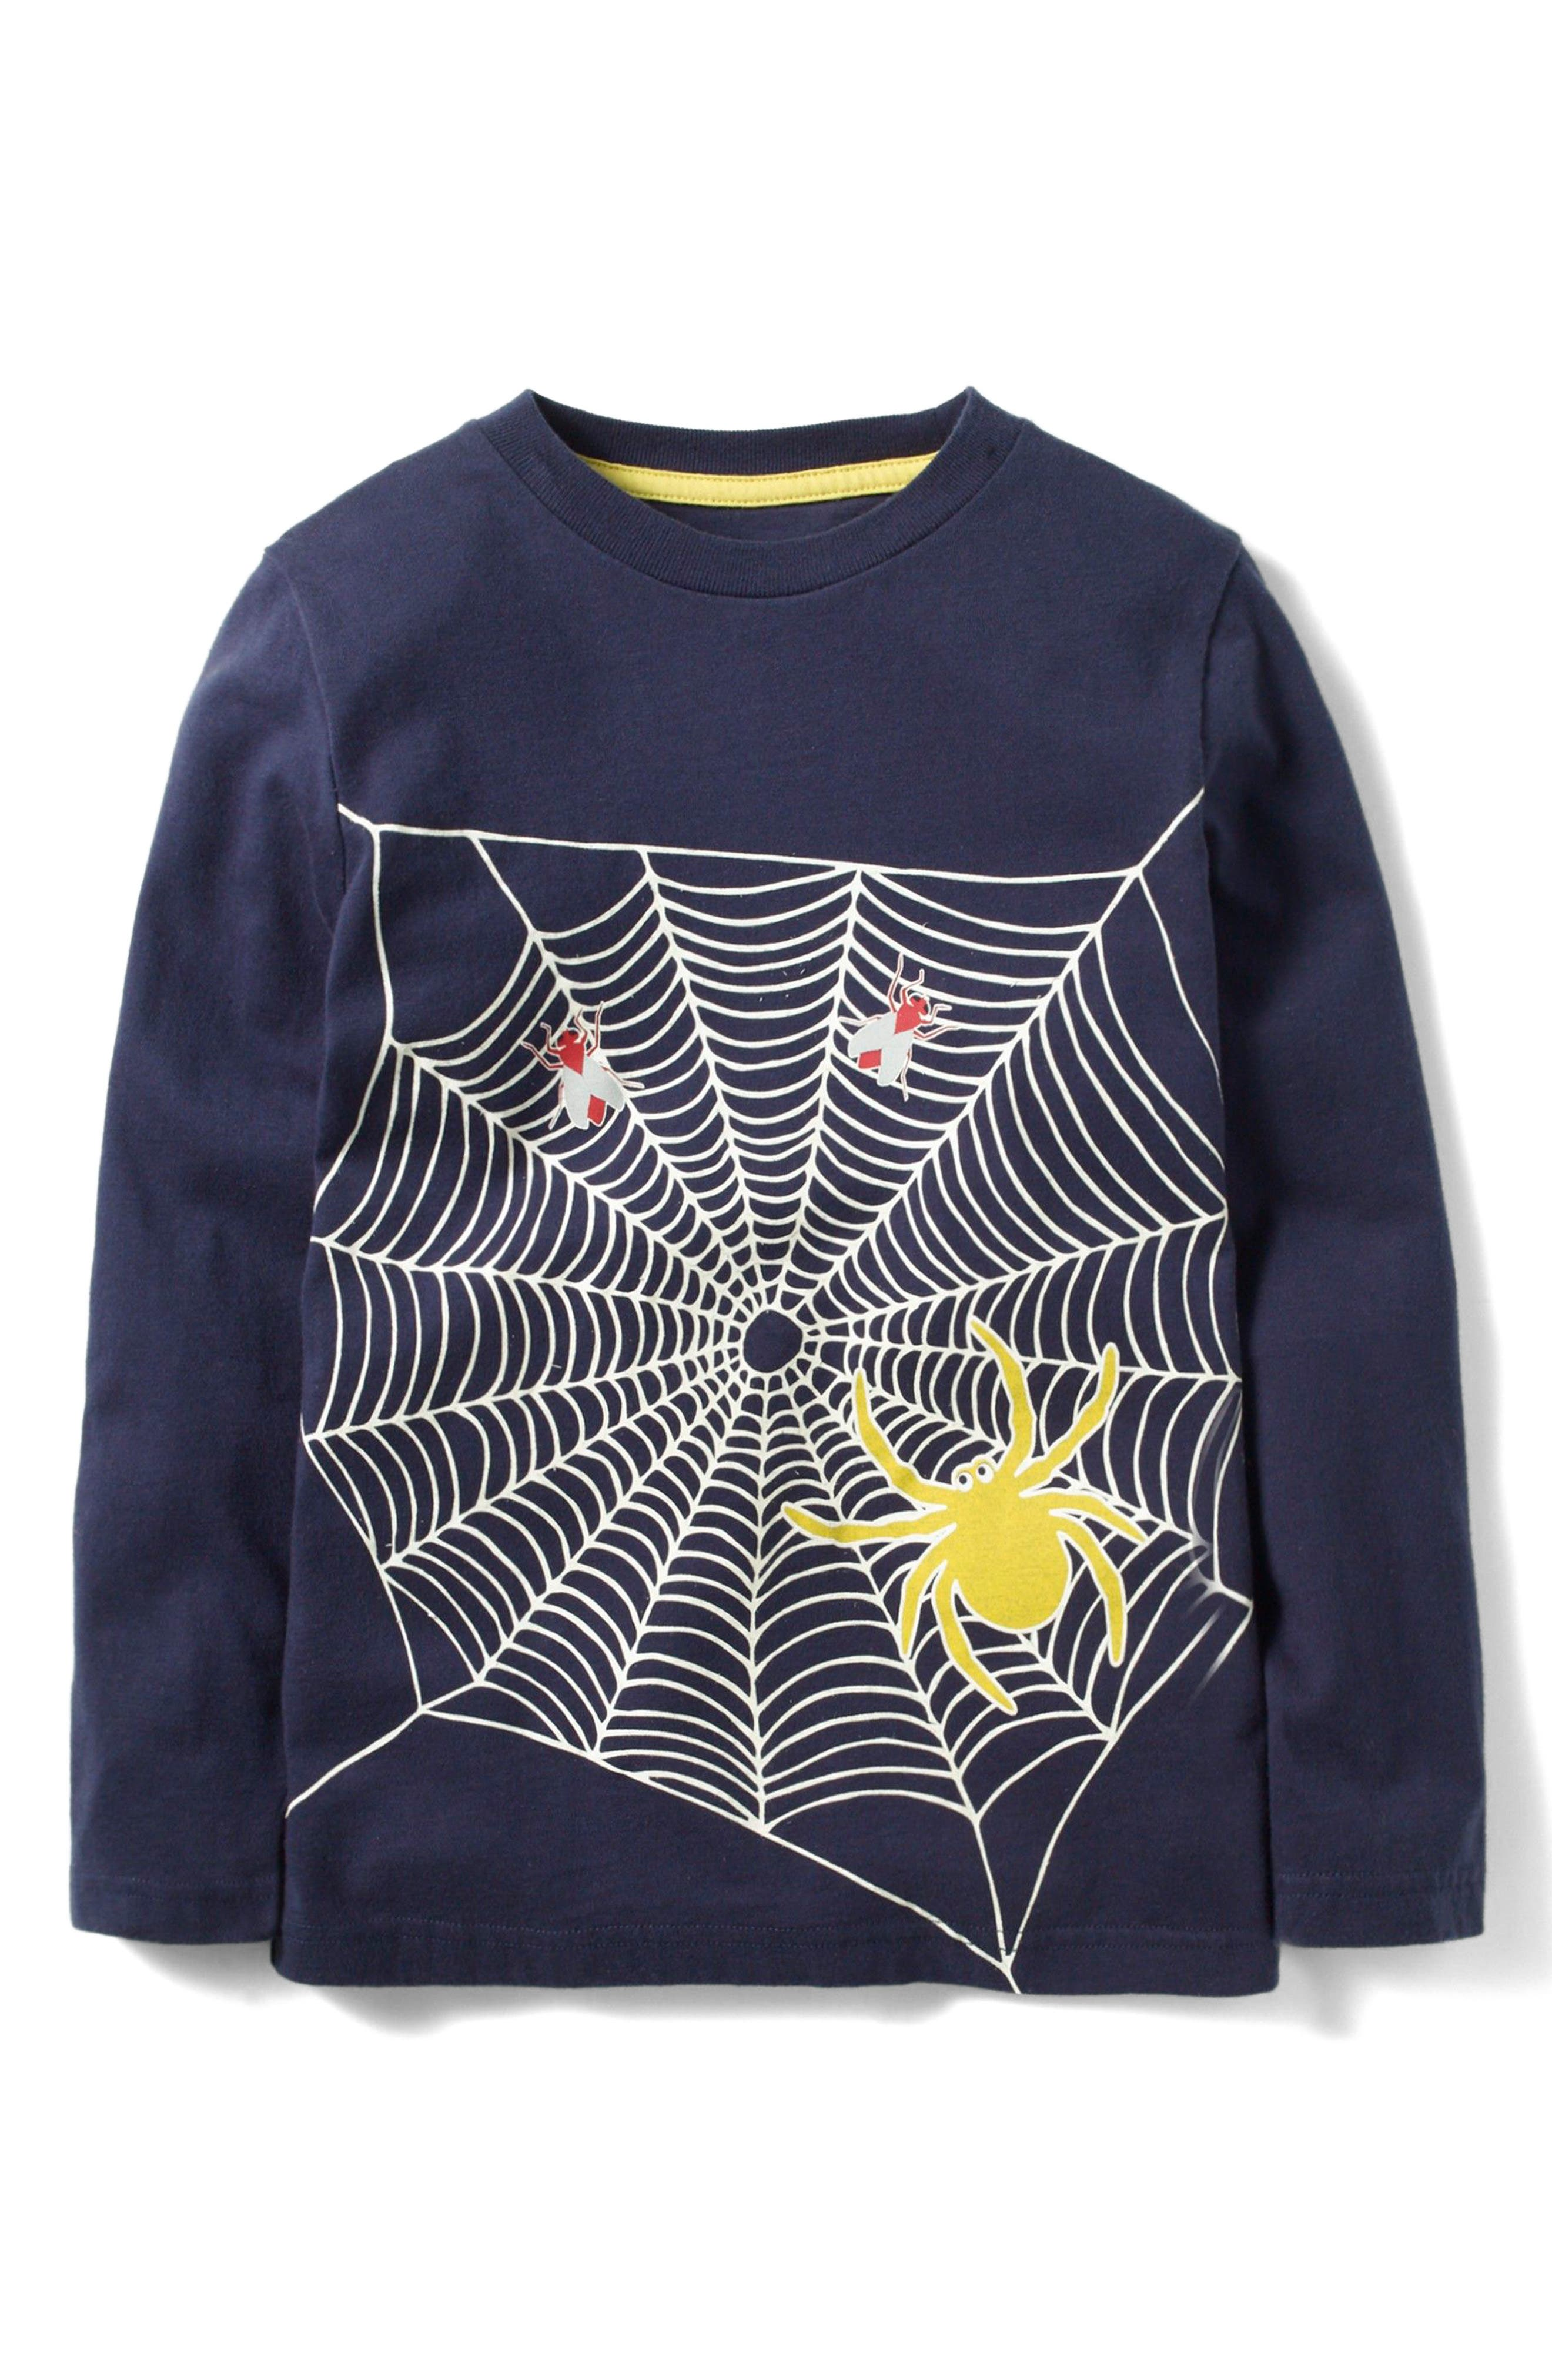 Alternate Image 1 Selected - Mini Boden Spooky Glow T-Shirt (Toddler Boys, Little Boys & Big Boys)